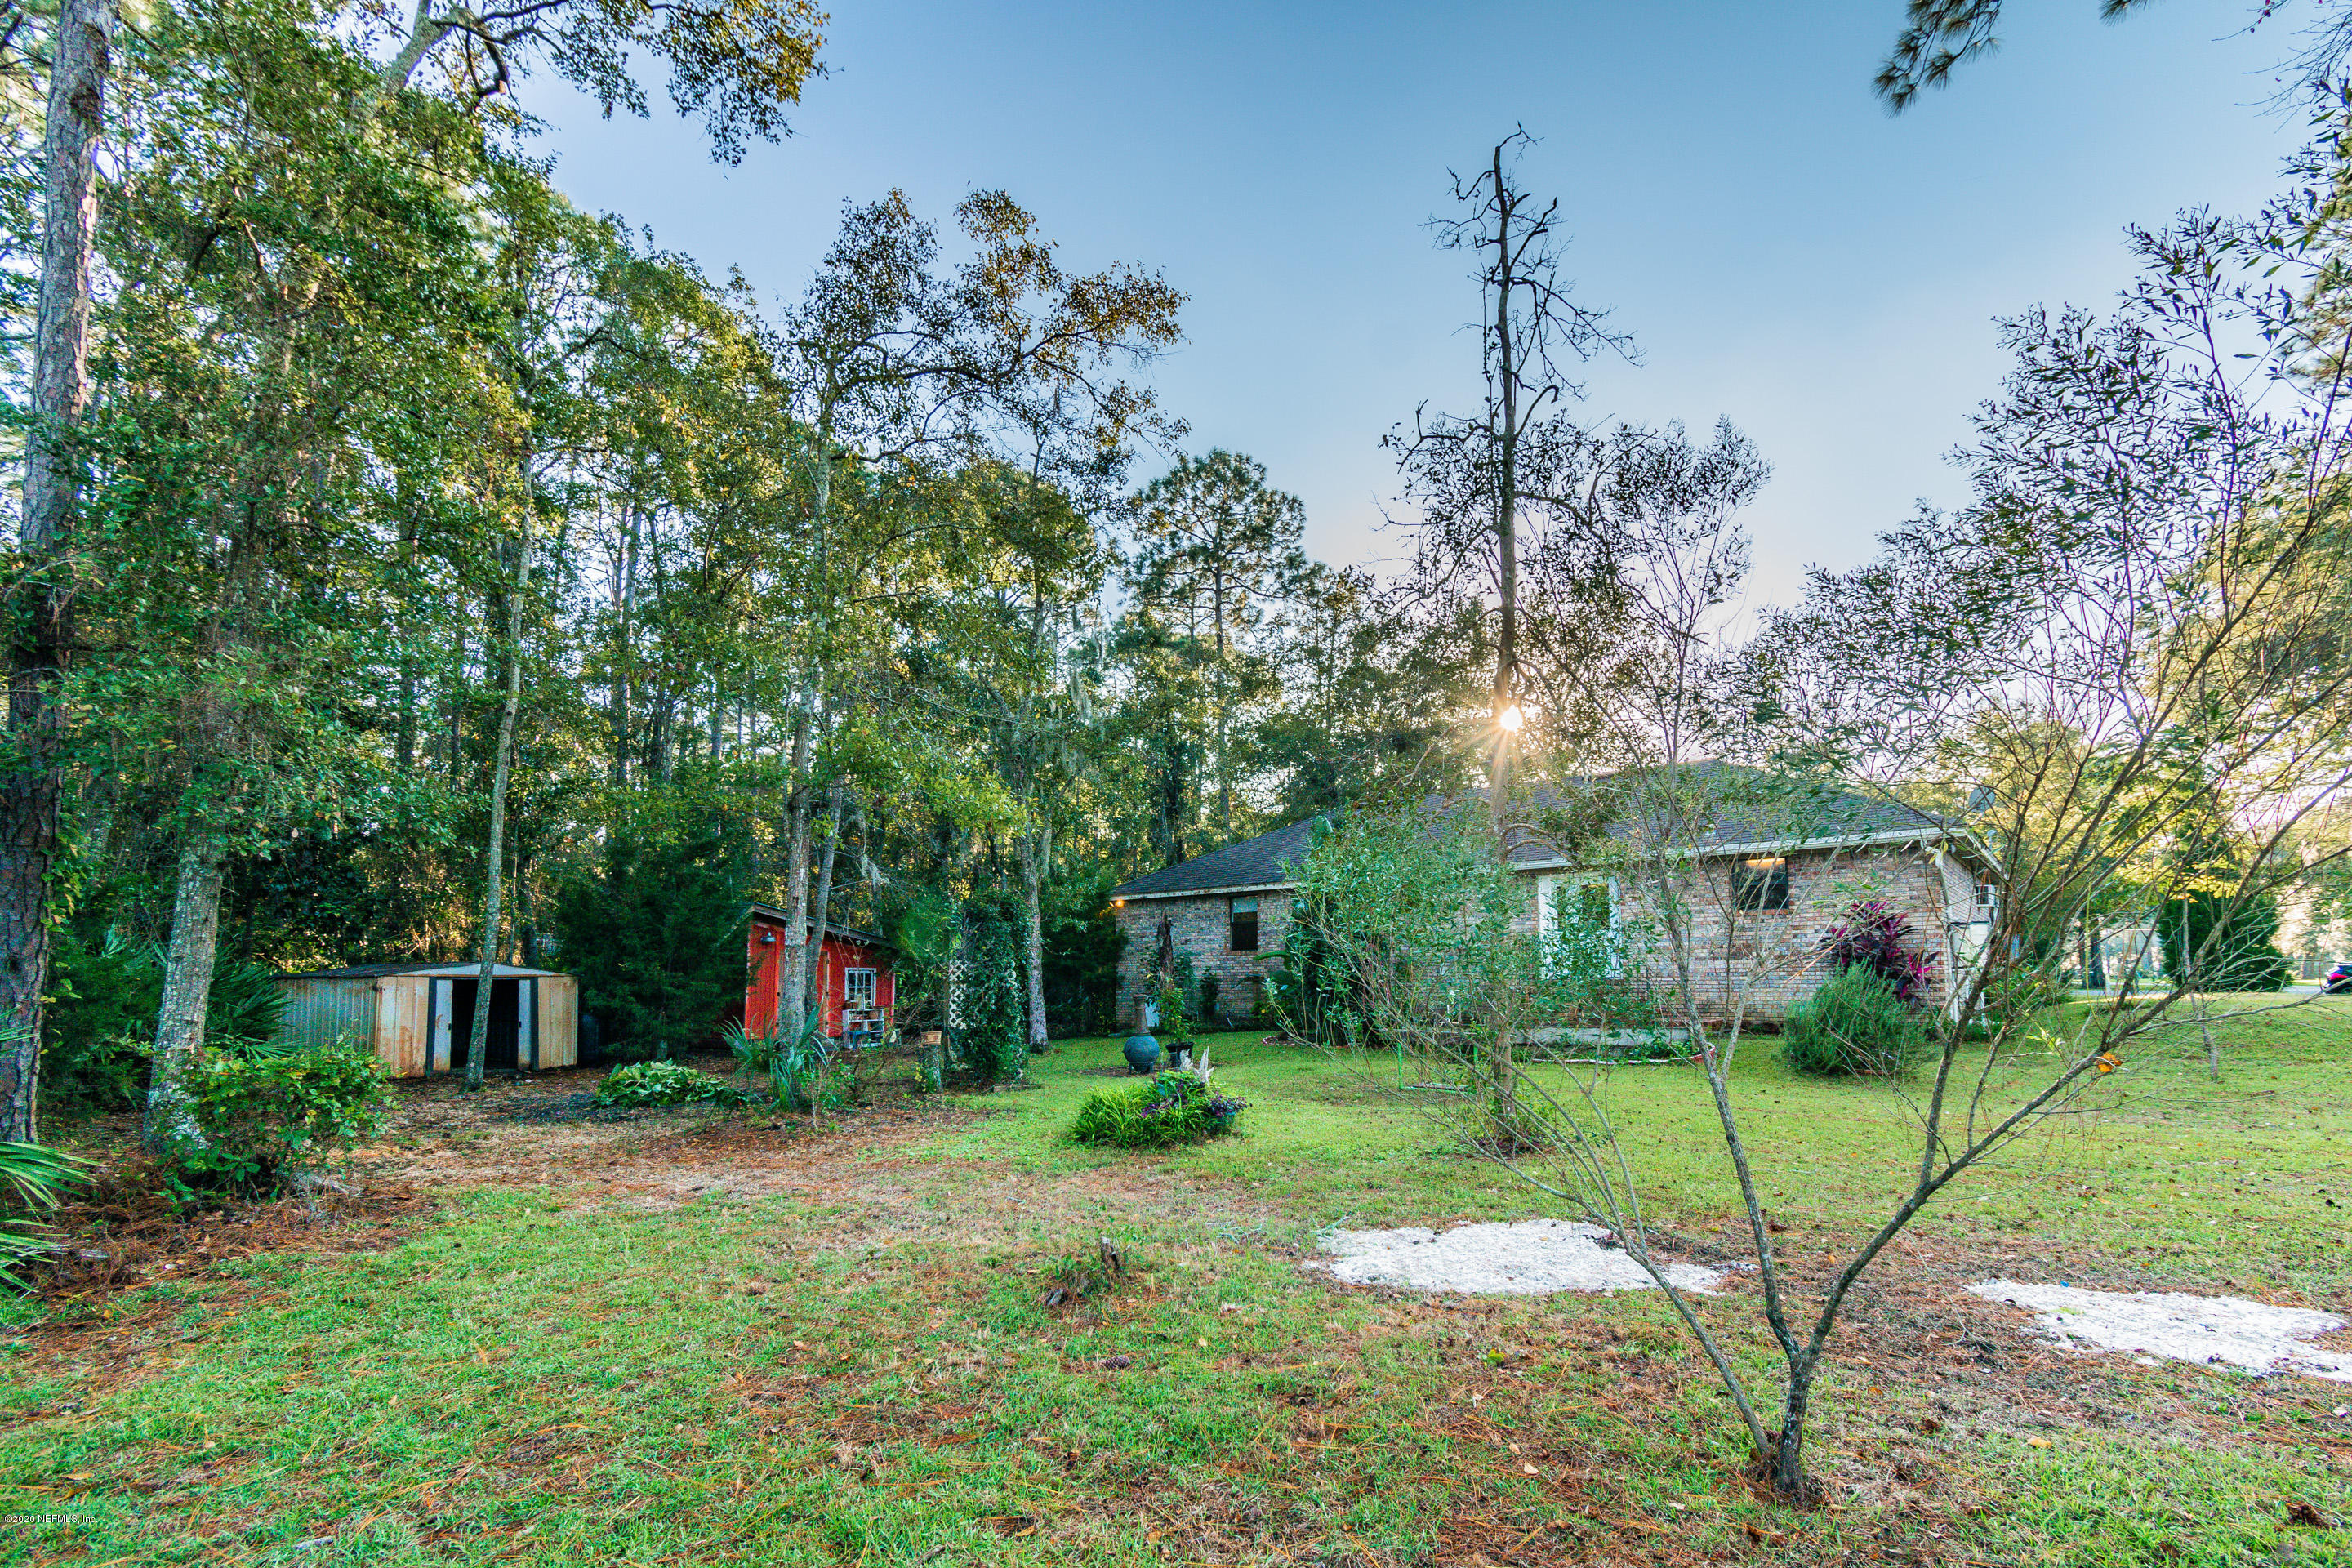 Image 31 of 38 For 96068 Piney Island Dr